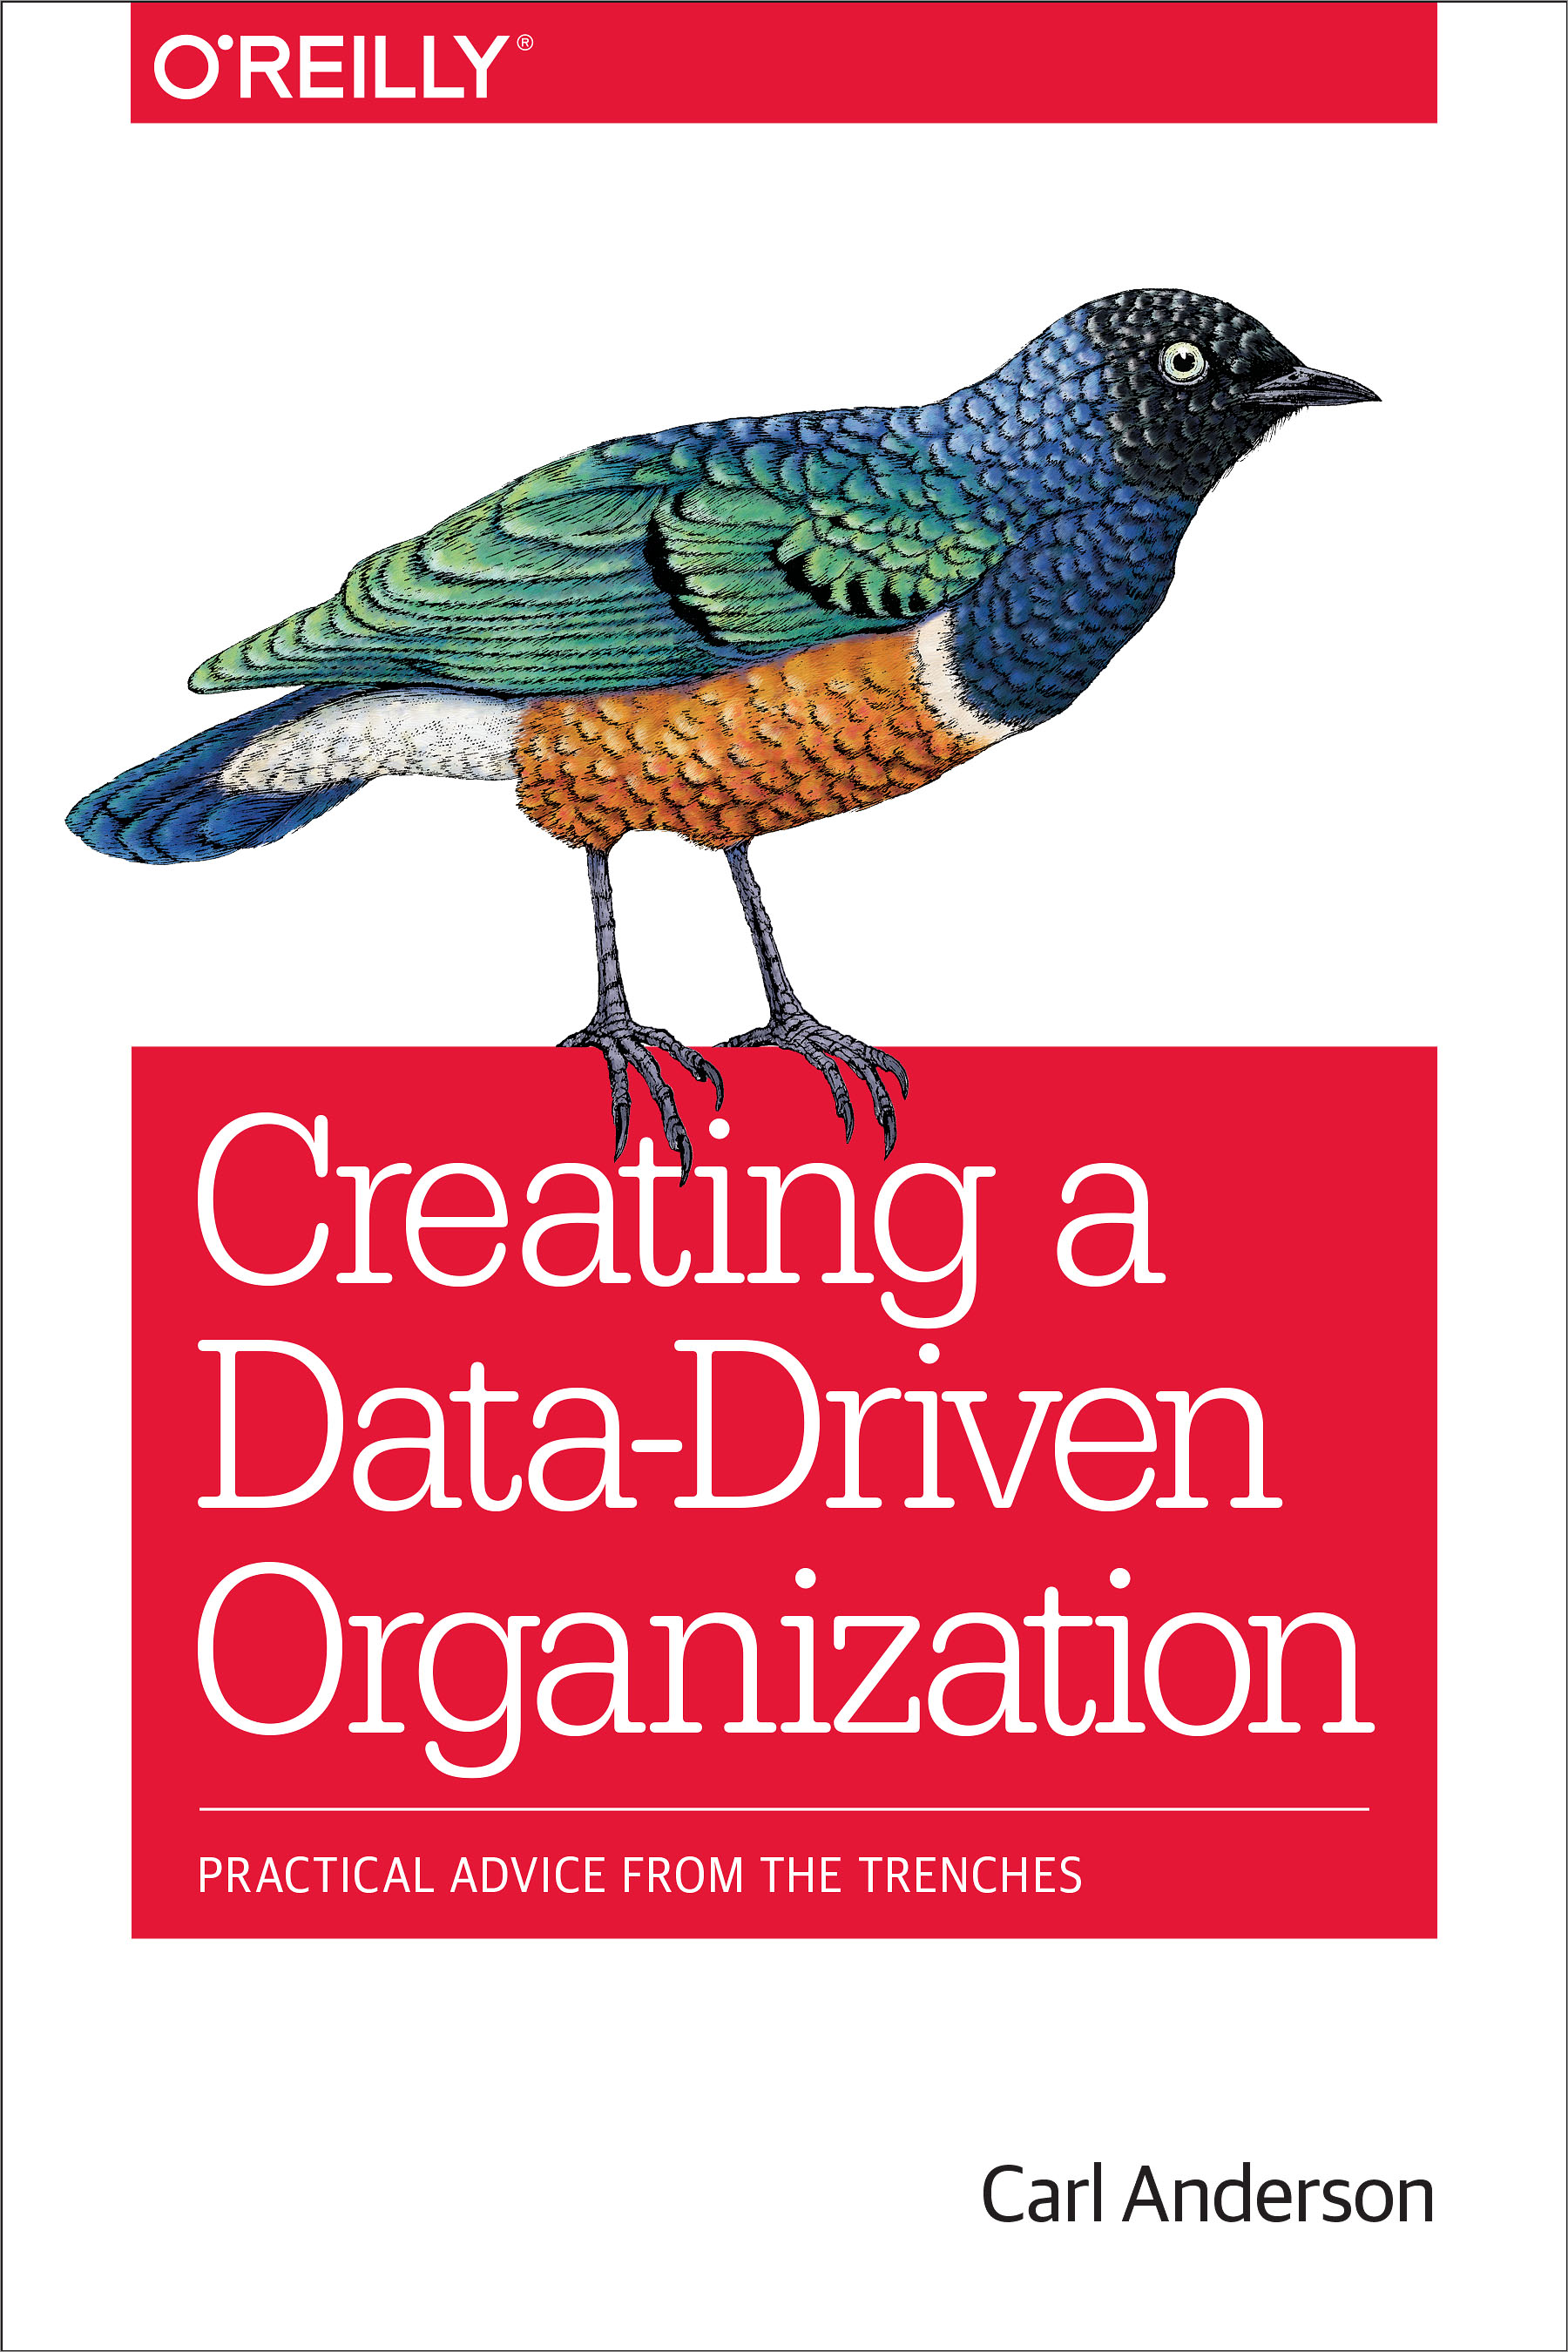 Download Ebook Creating a Data-Driven Organization by Carl Anderson Pdf